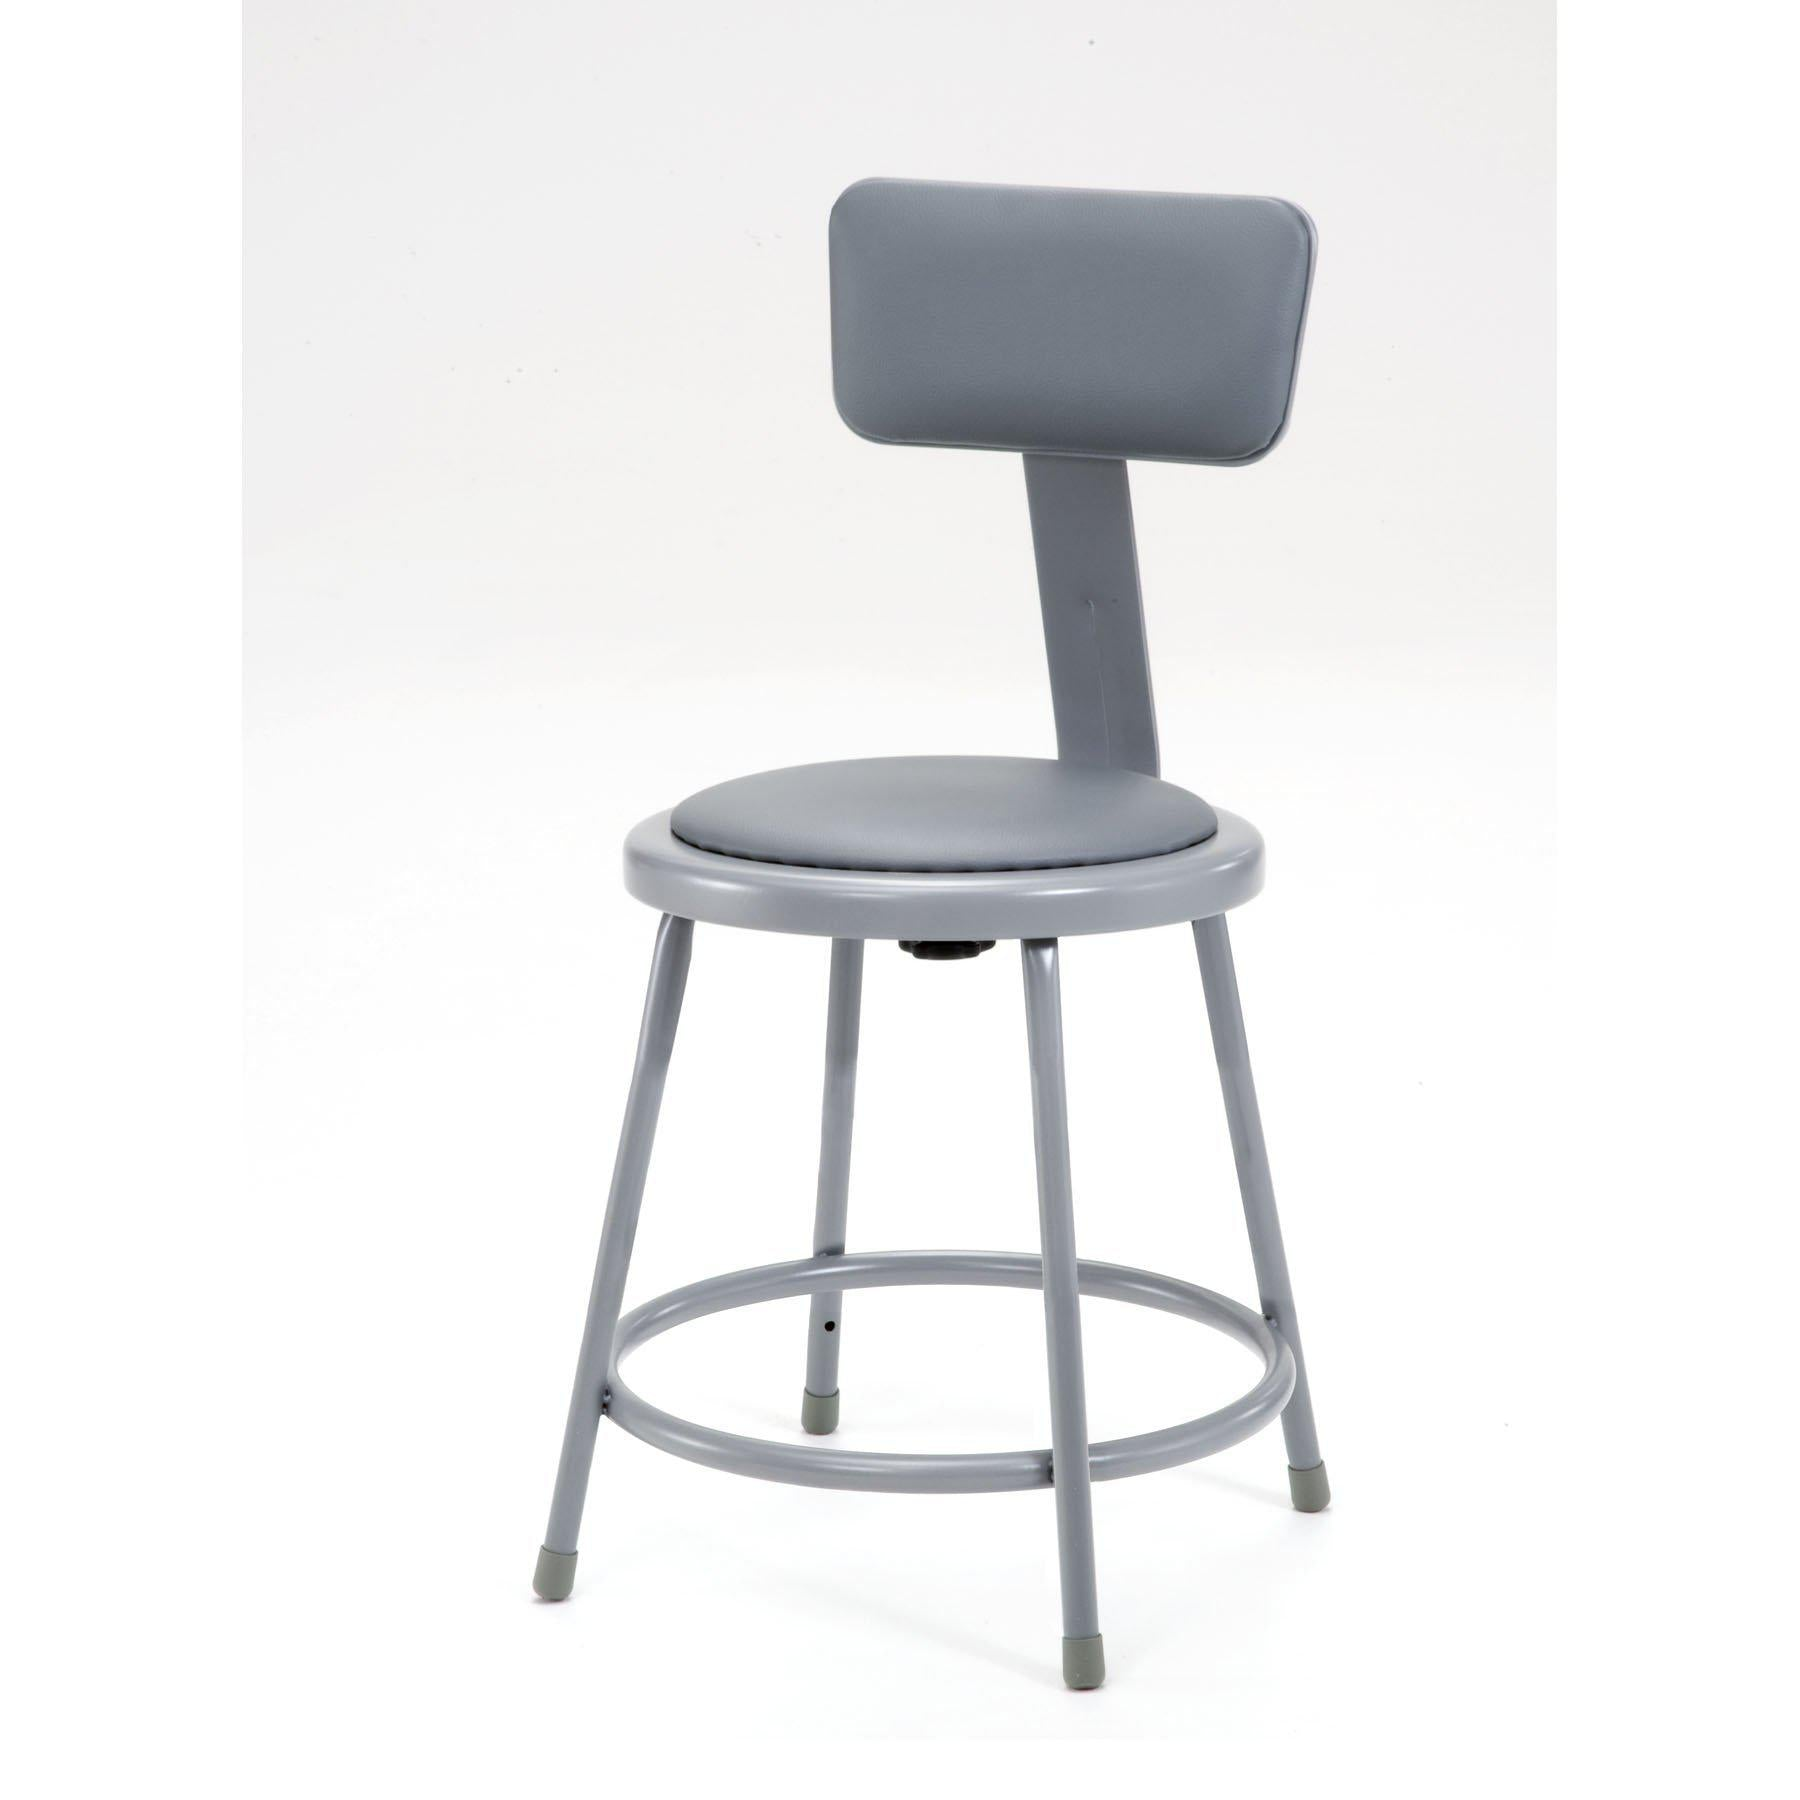 "Heavy Duty Vinyl Padded Steel Stool With Backrest-Stools-Grey-18""-"